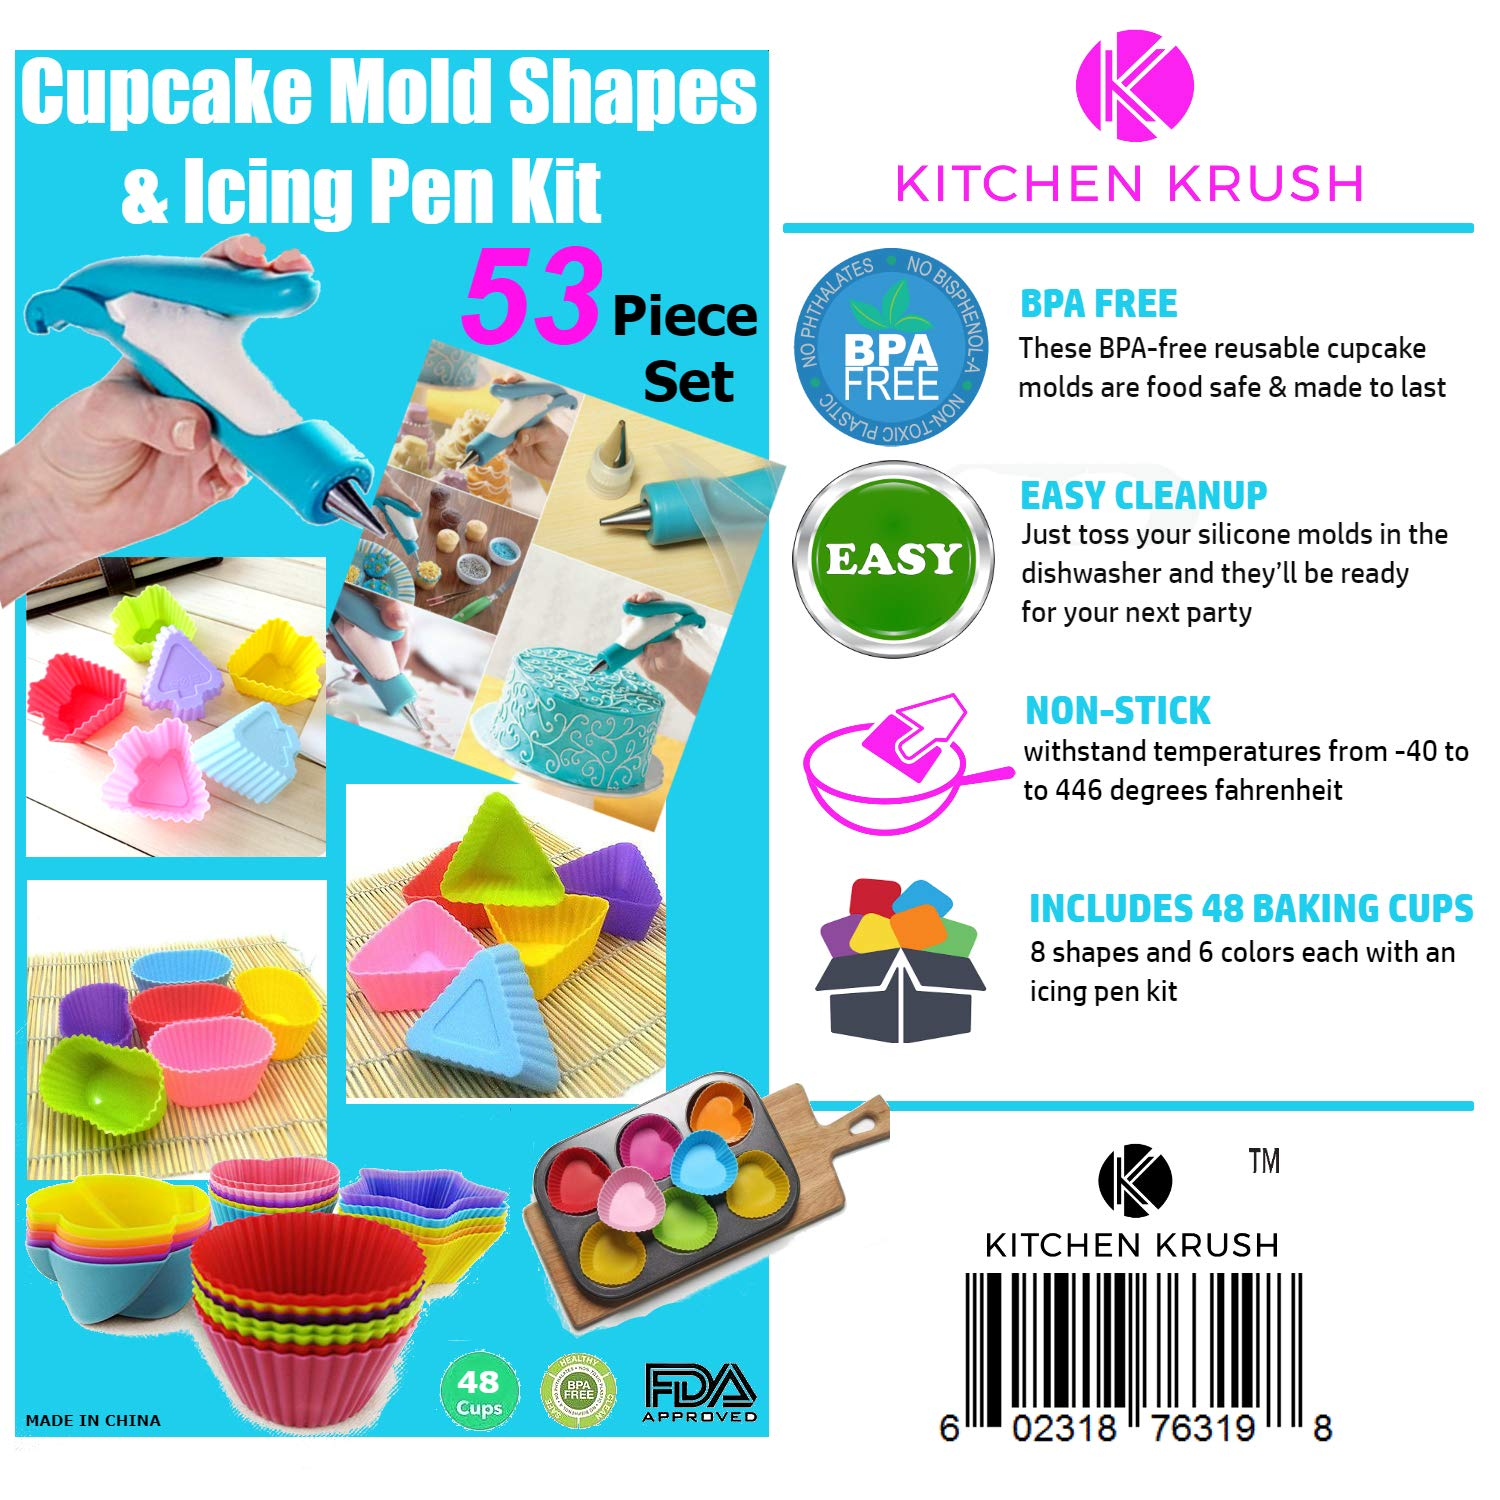 Cupcake Baking Cup Molds Bundle Easy Clean Pastry Liners 48 Nonstick Reusable Silicone Muffin Molds with Icing Pen Cupcake & Cake Decorating Pen Set by Kitchen Krush (Image #9)